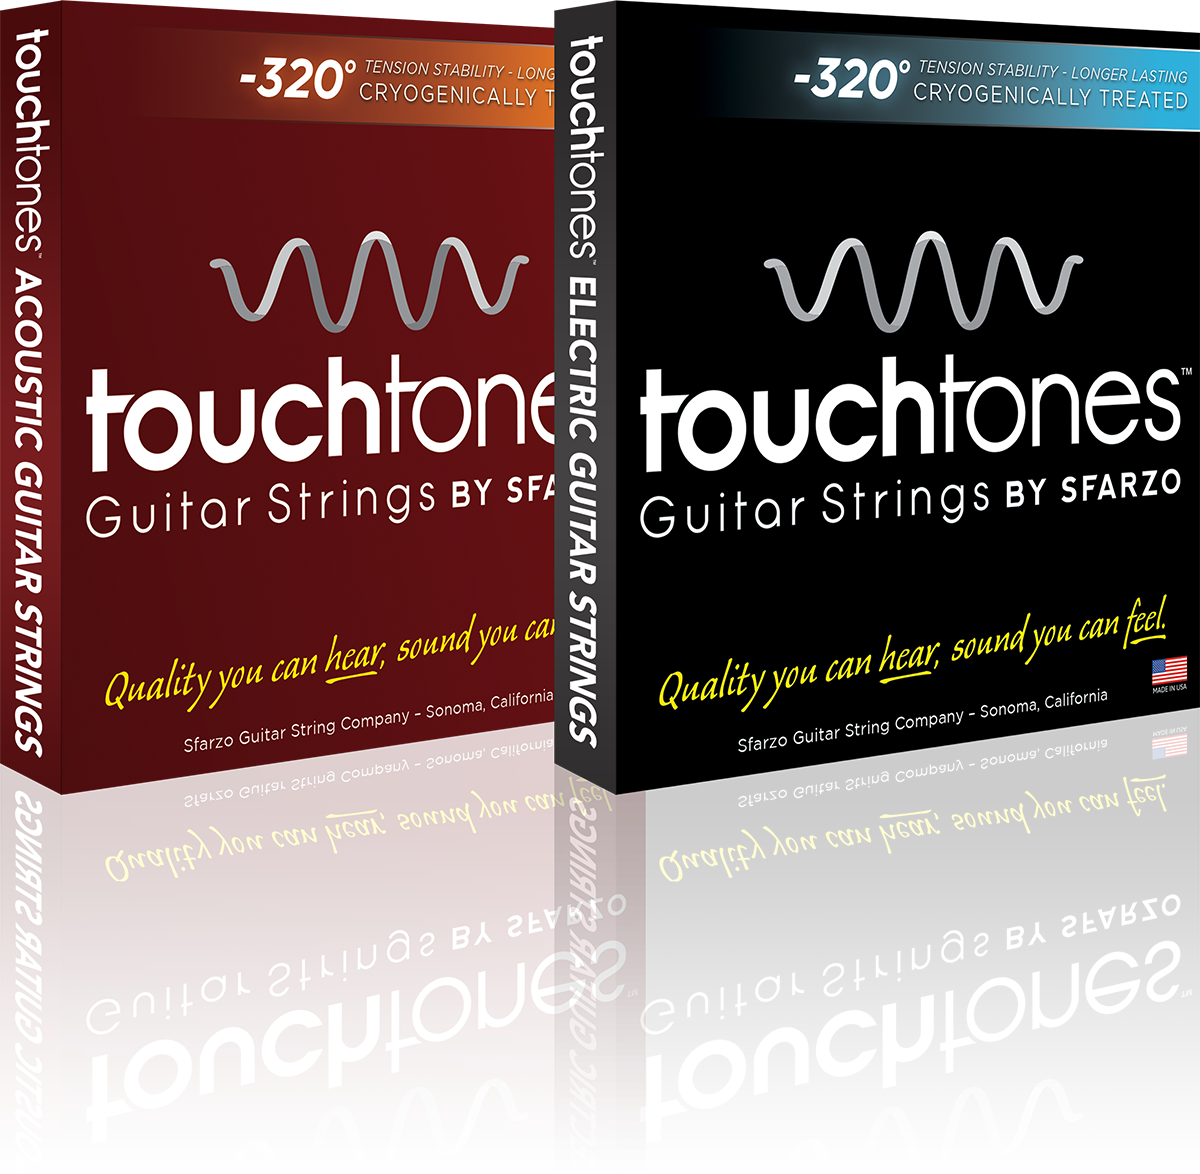 touchtone-strings-sfarzo-01.png